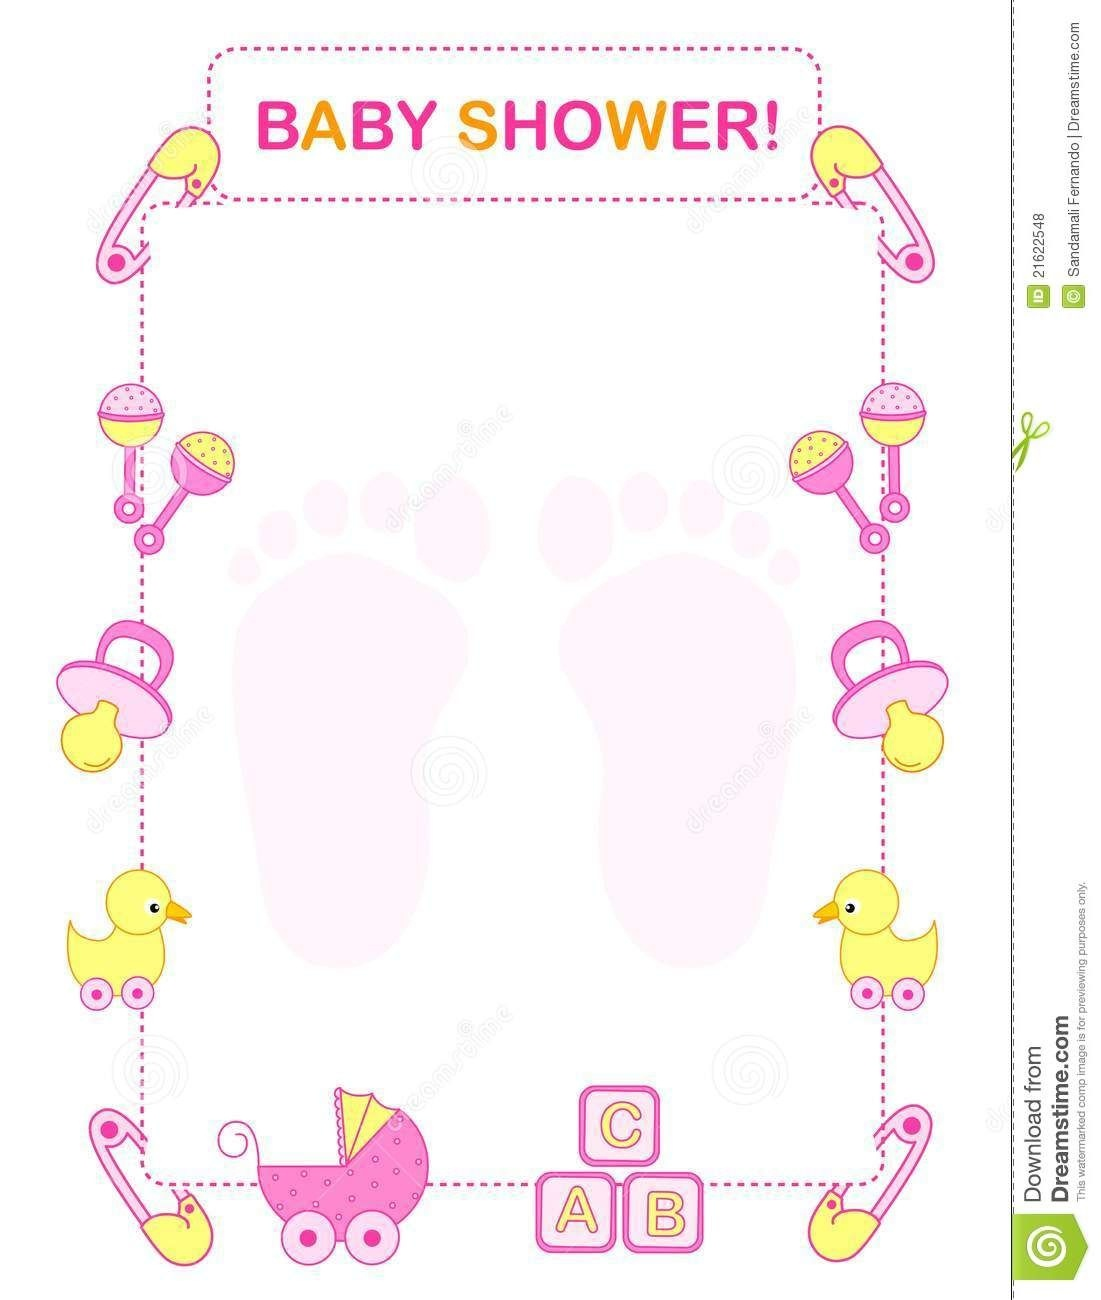 Free Printable Baby Shower Clip Art (59 )   Baby Shower In 2019 - Free Printable Baby Shower Clip Art